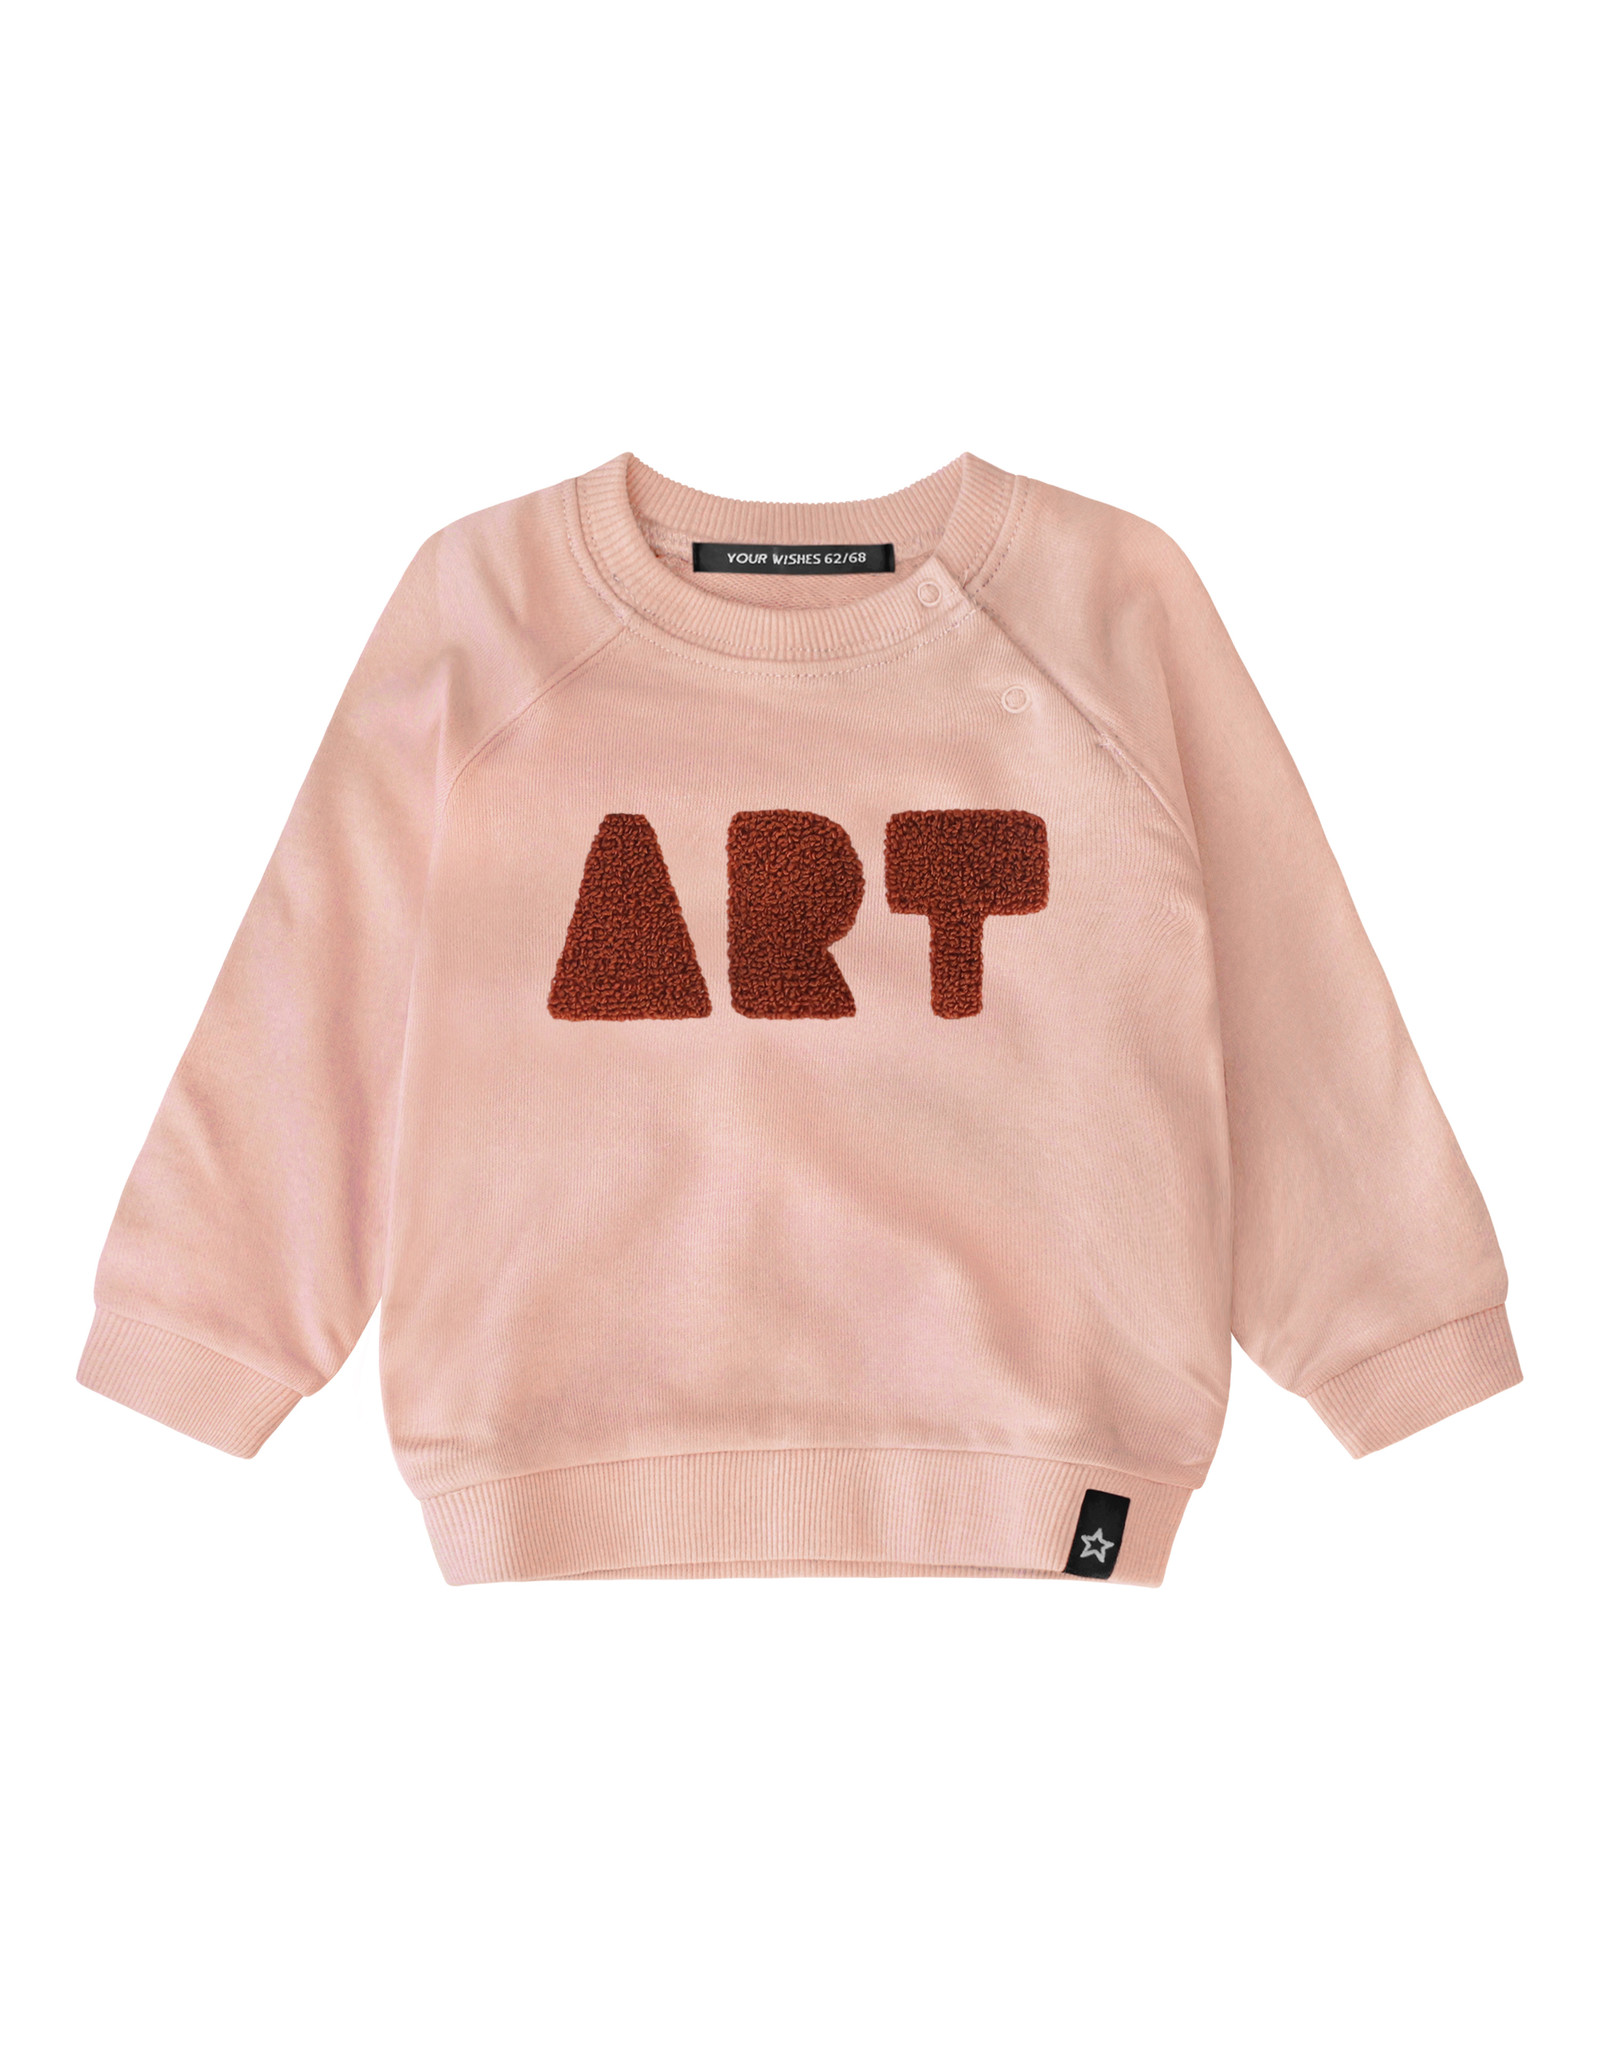 Your Wishes YW | Art | Sweater | Soft Pink